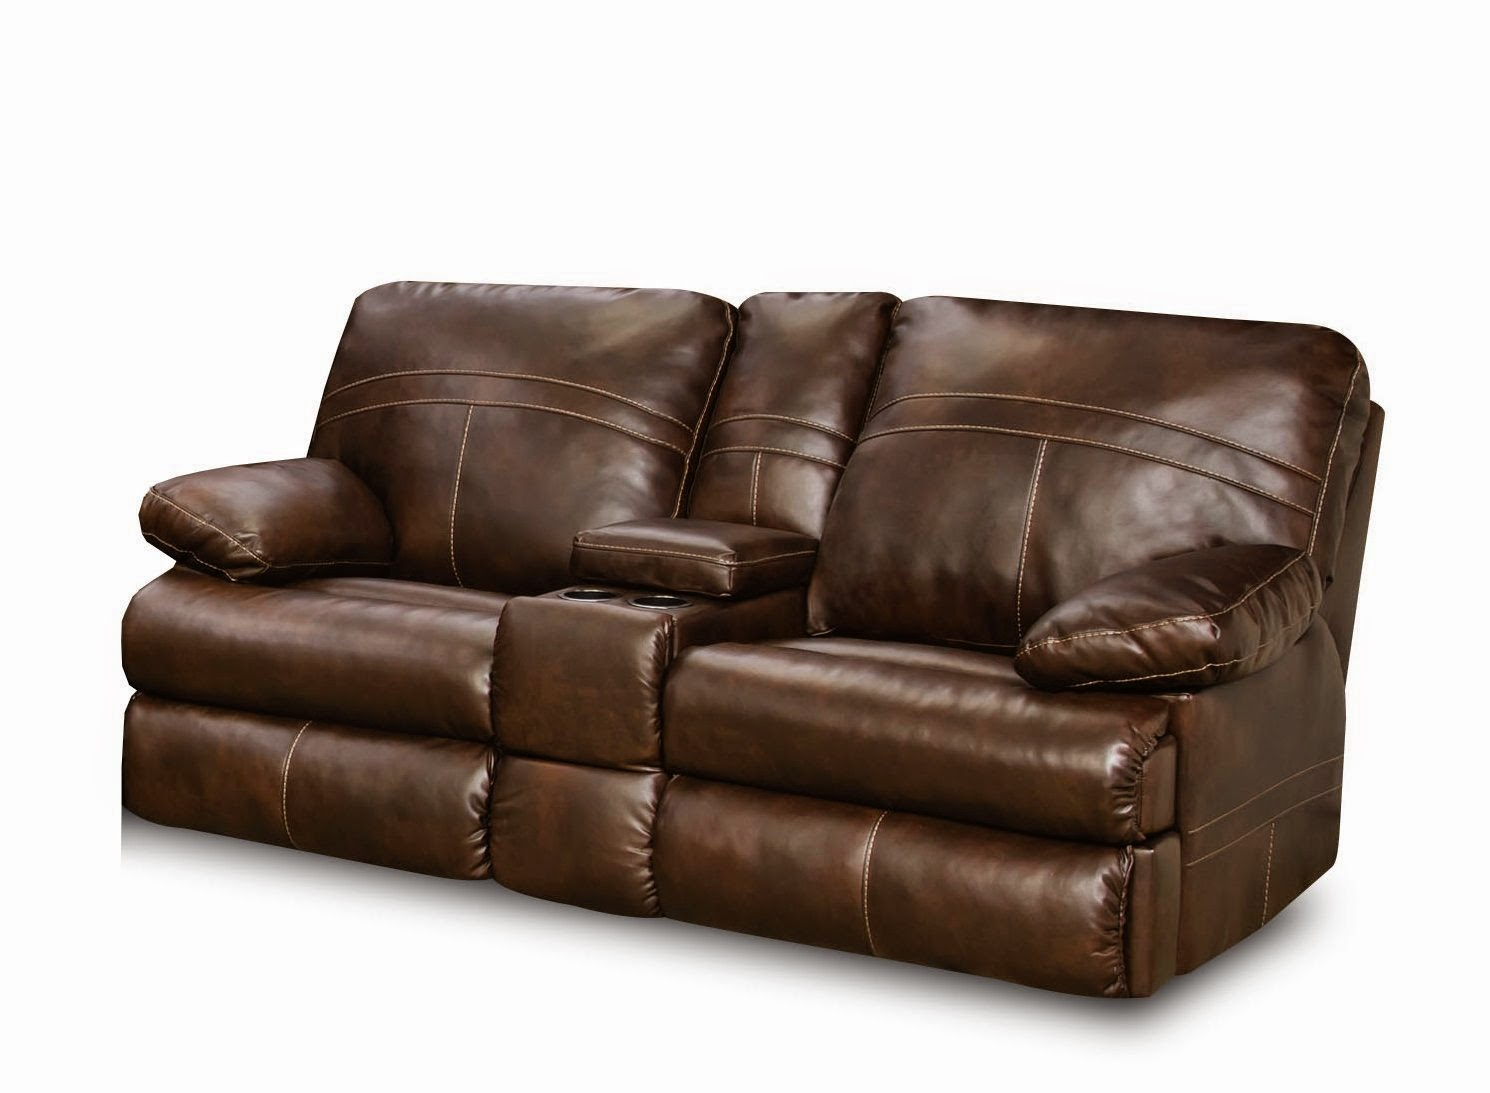 Simmons Reclining Sofa Reviews 50431 United Furniture ...